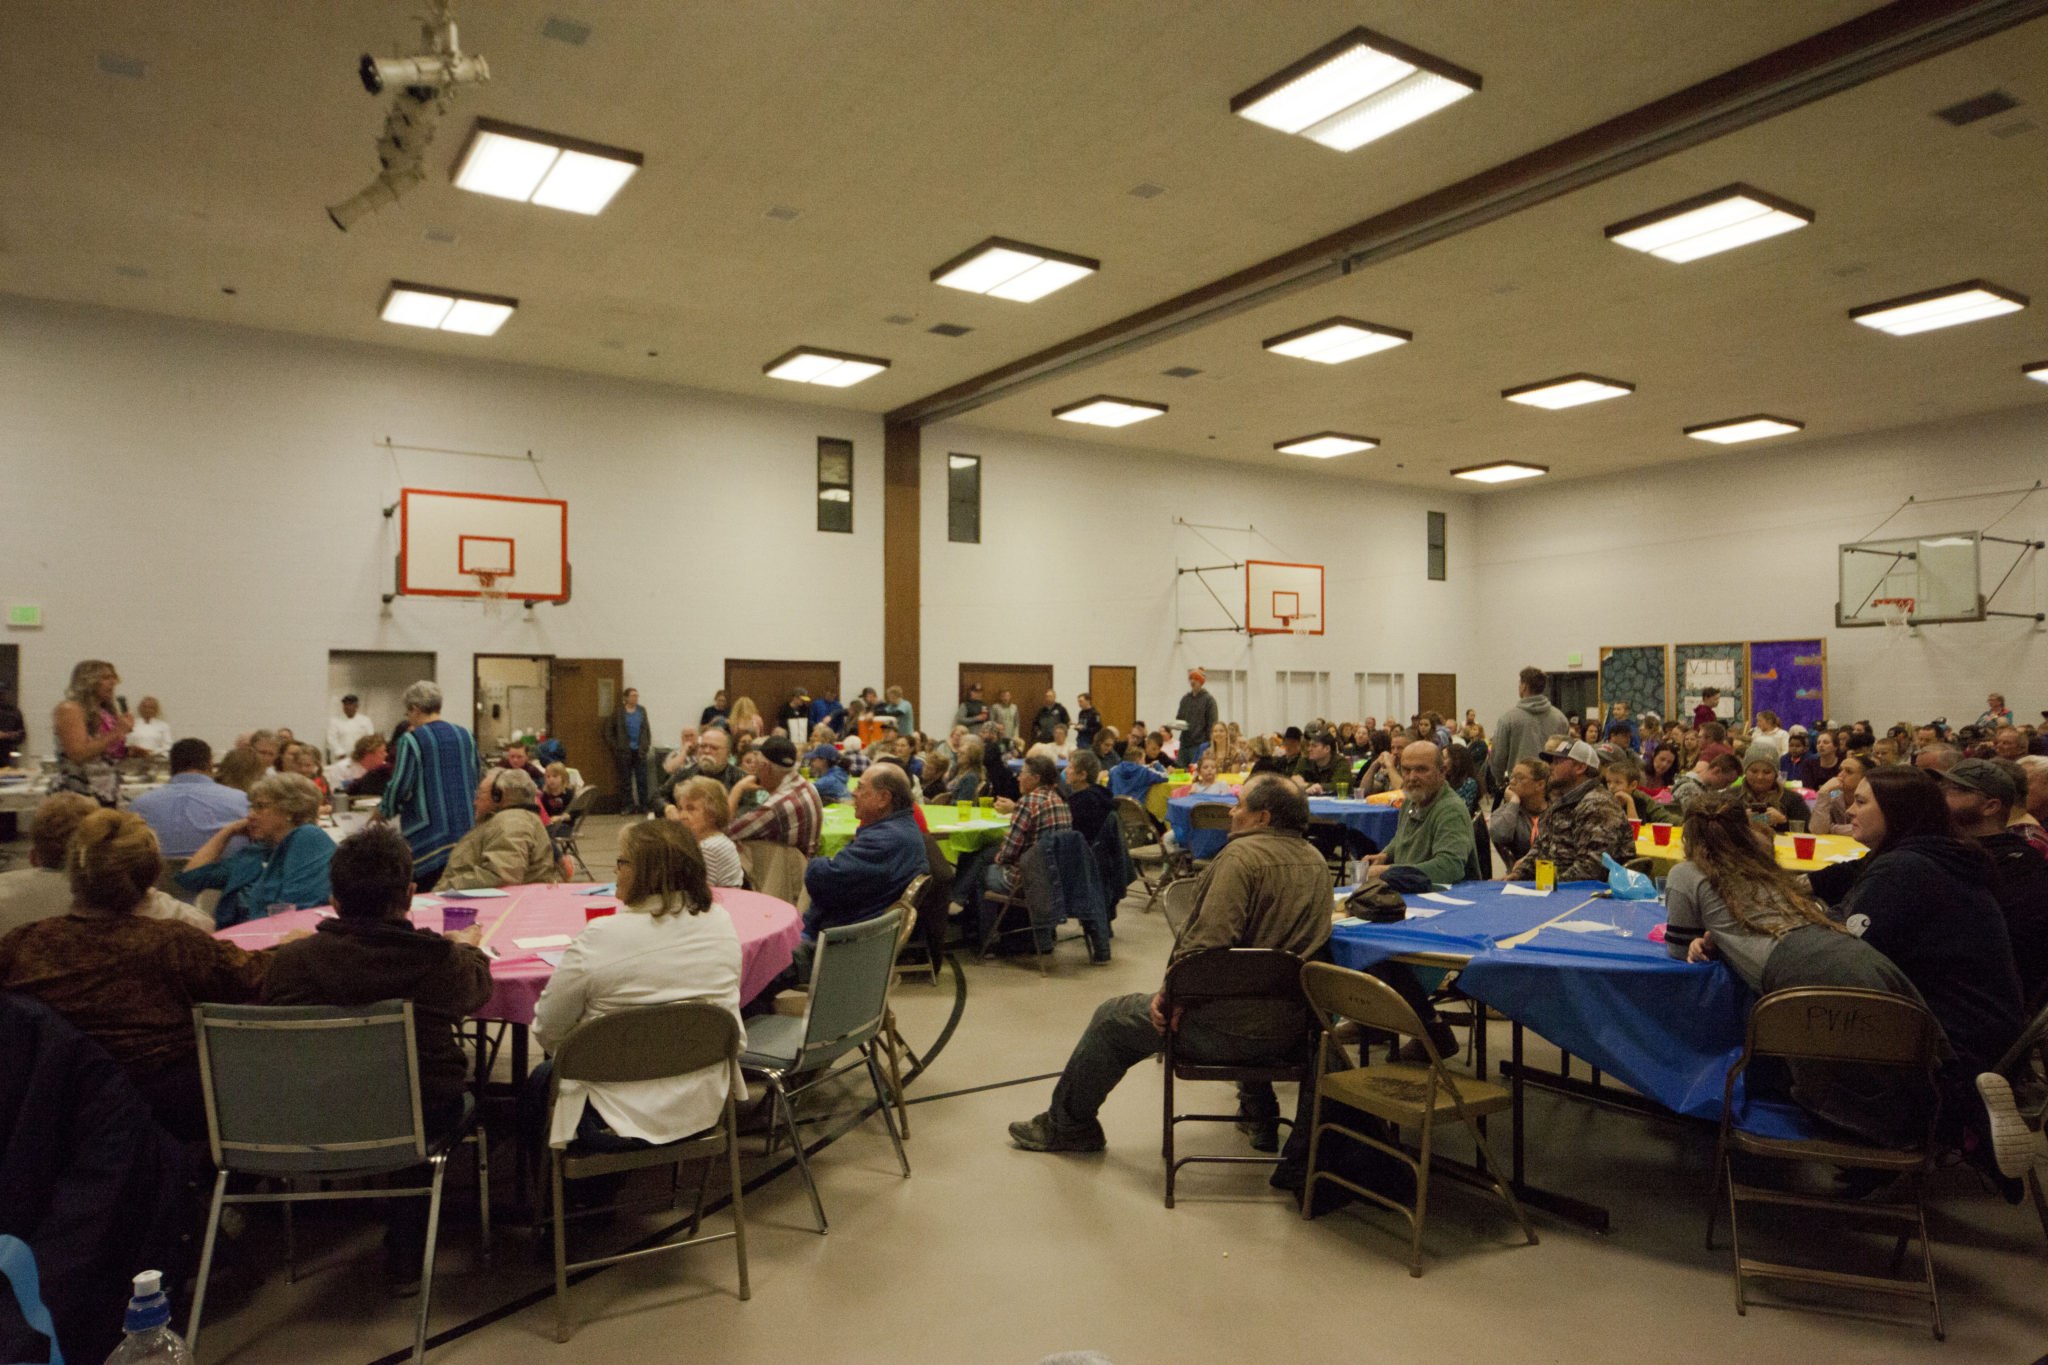 Credit union hosts nearly 350 at annual gathering